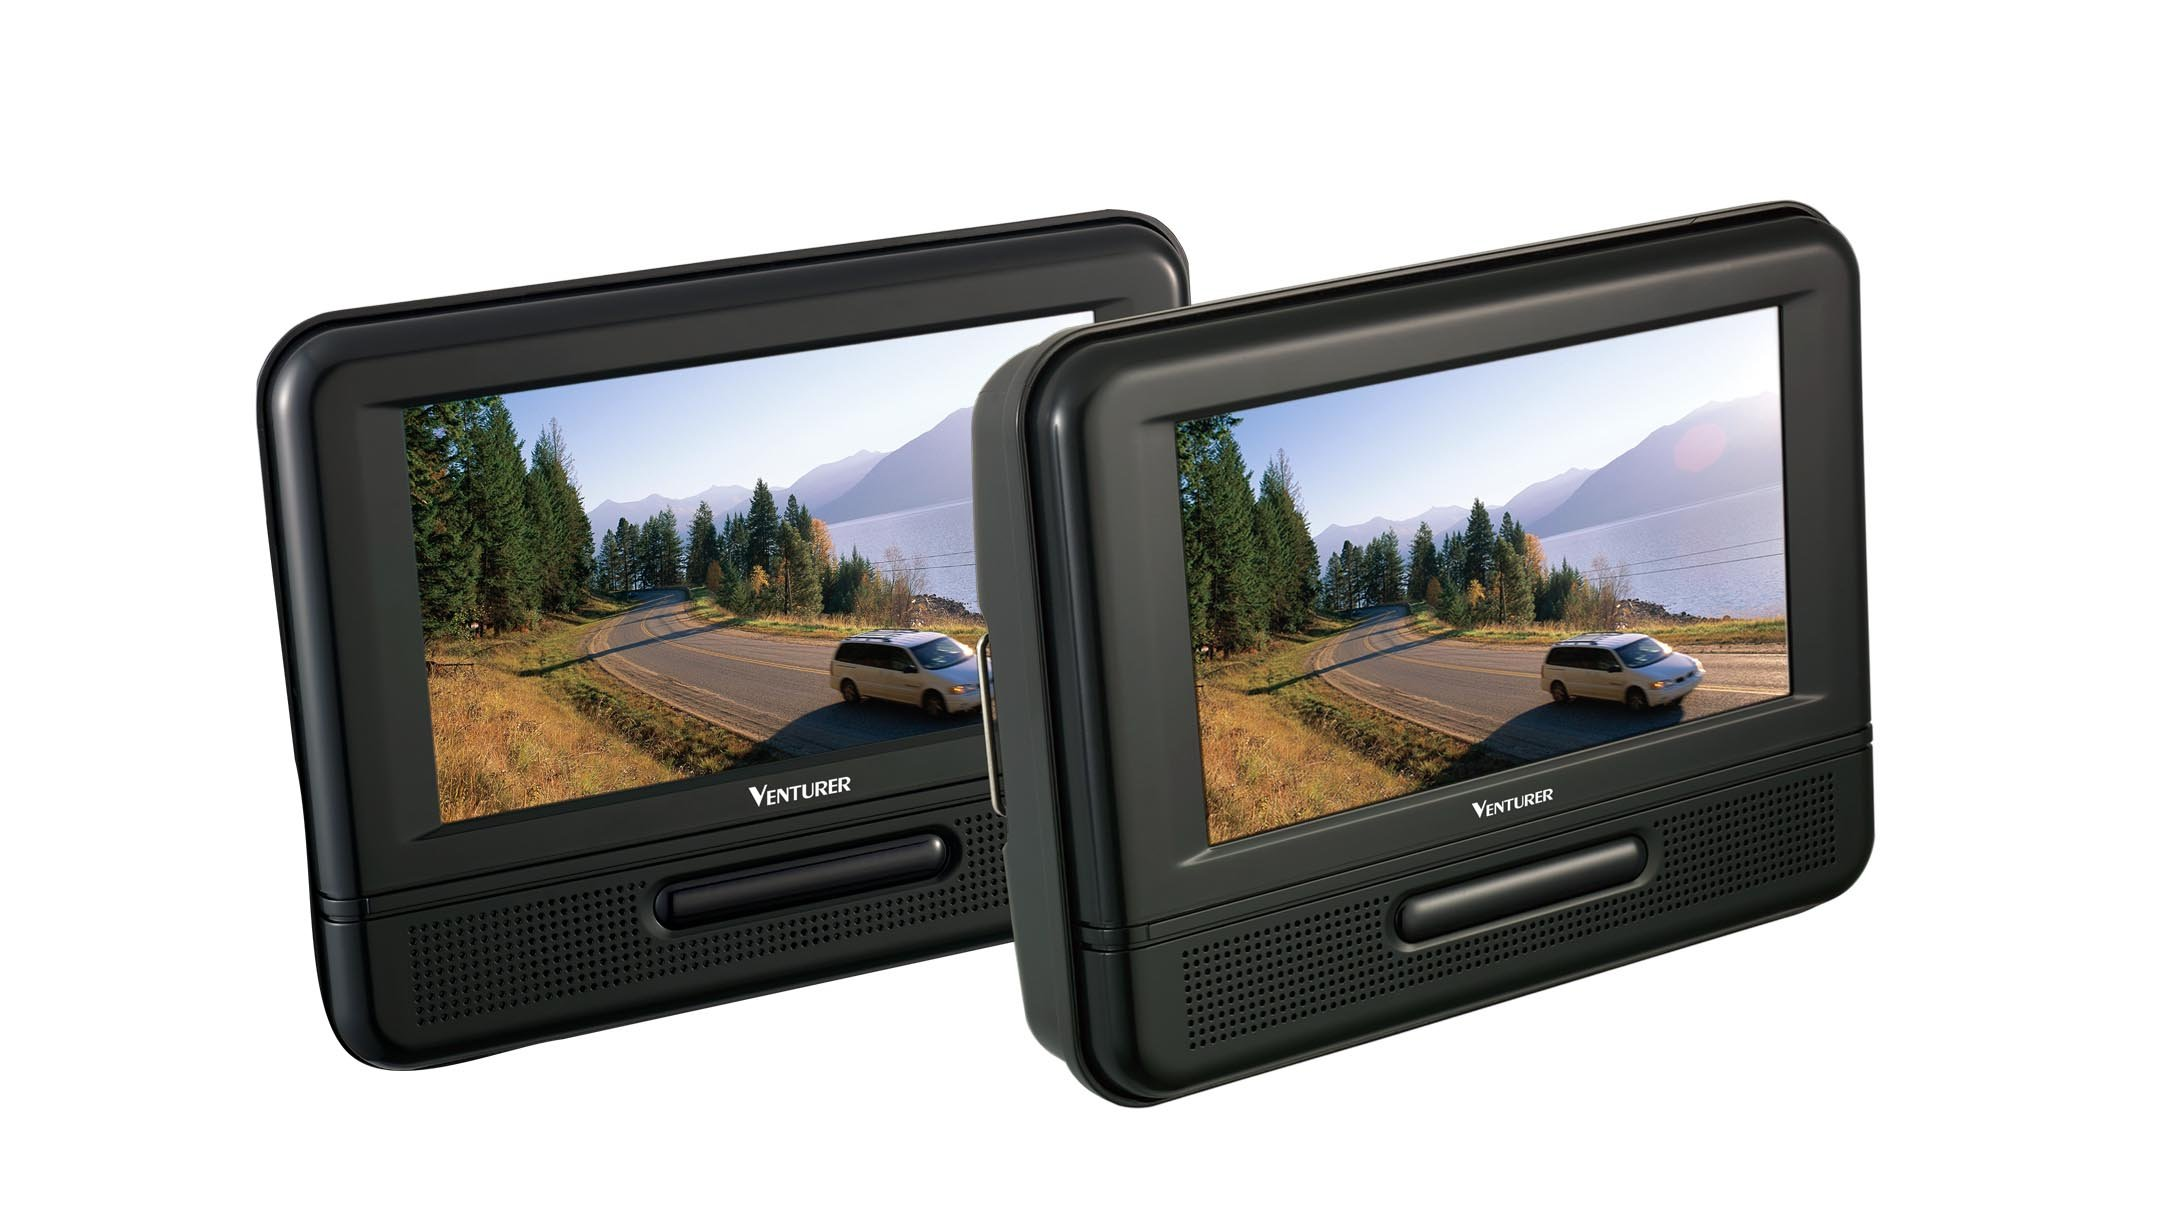 Venturer (PVS79703) Dual Screen Mobile DVD Player - Set of Two 7-Inch LCD Screens, (7-Piece Kit)